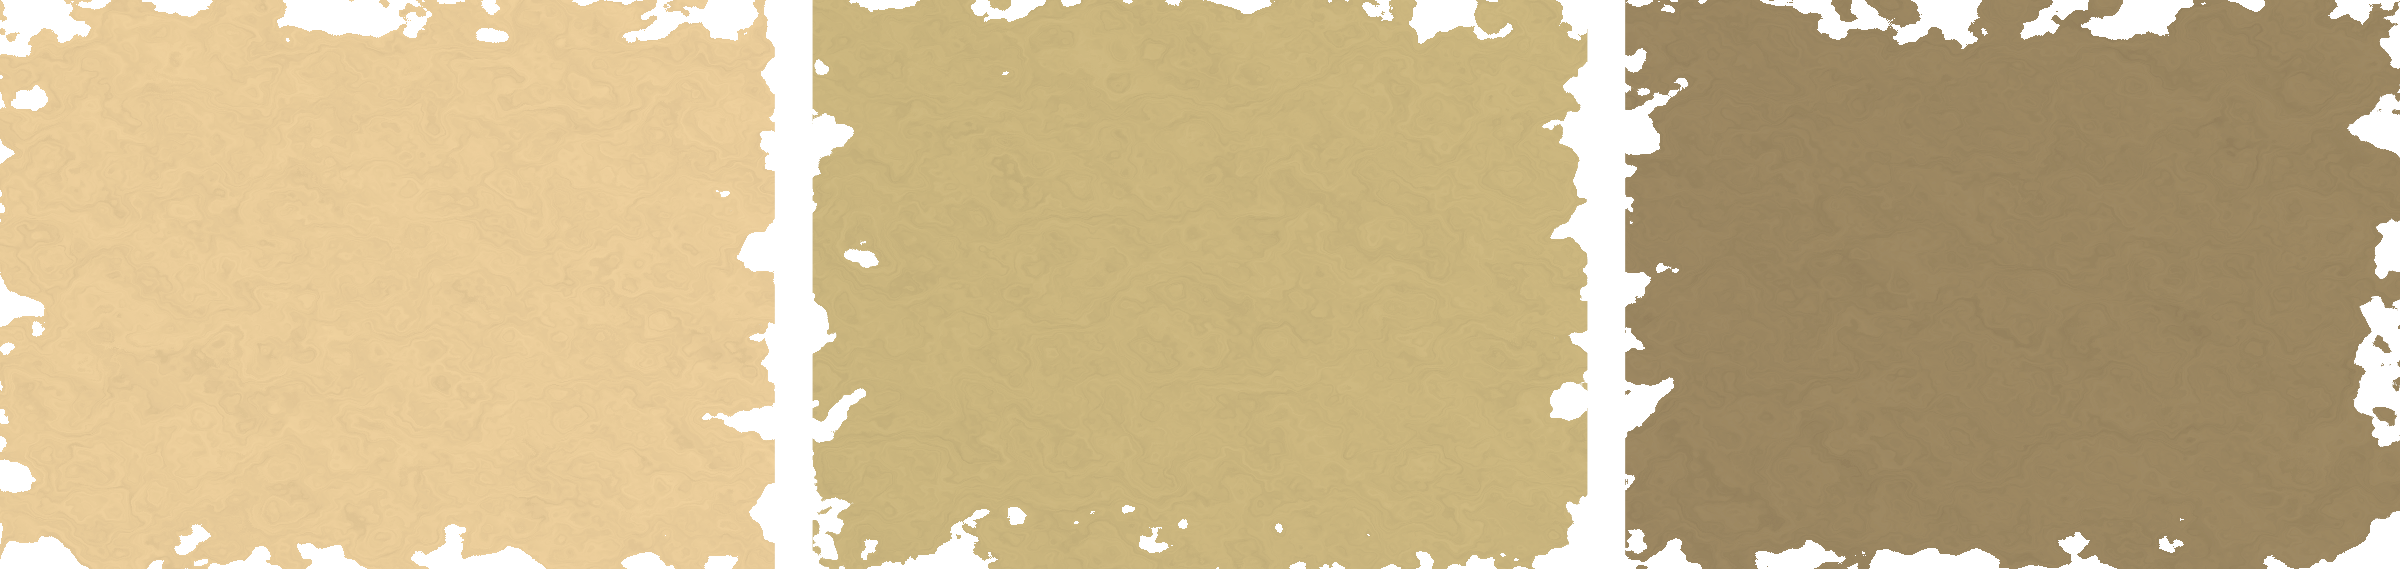 Old parchment png. Texture icons free and